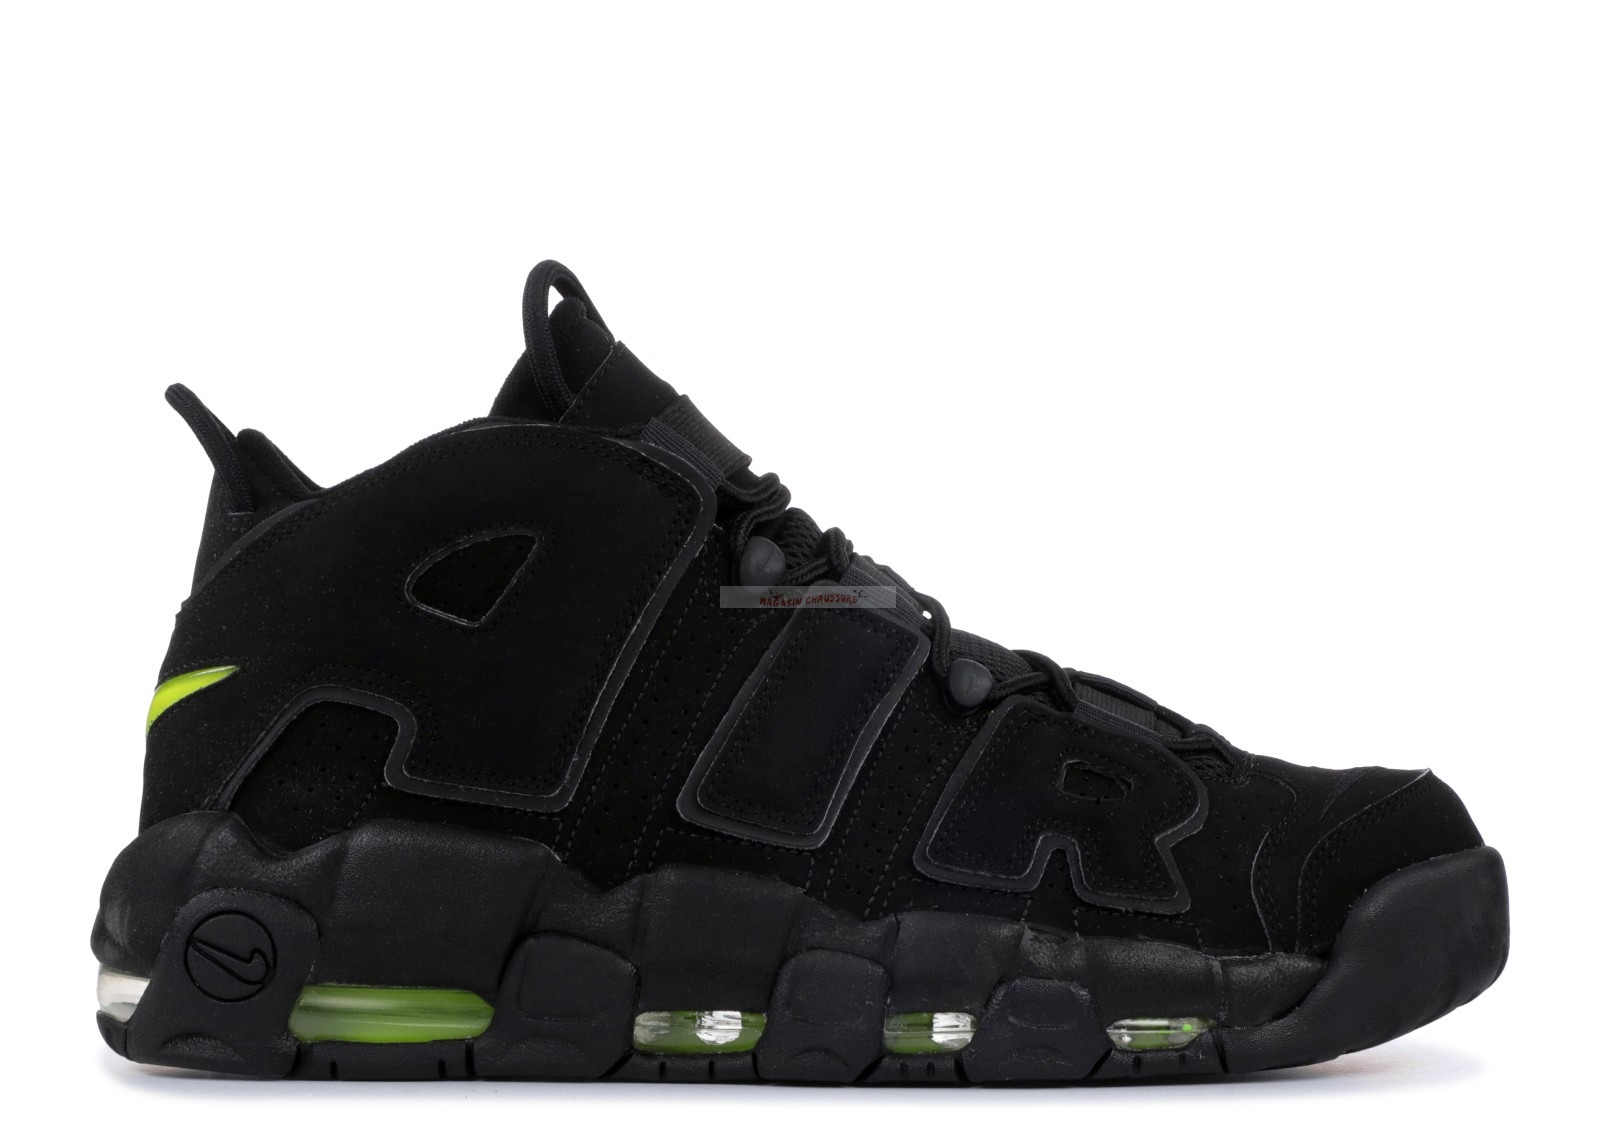 Nike Air More Uptempo Noir Volt (414962-013) Chaussure de Basket